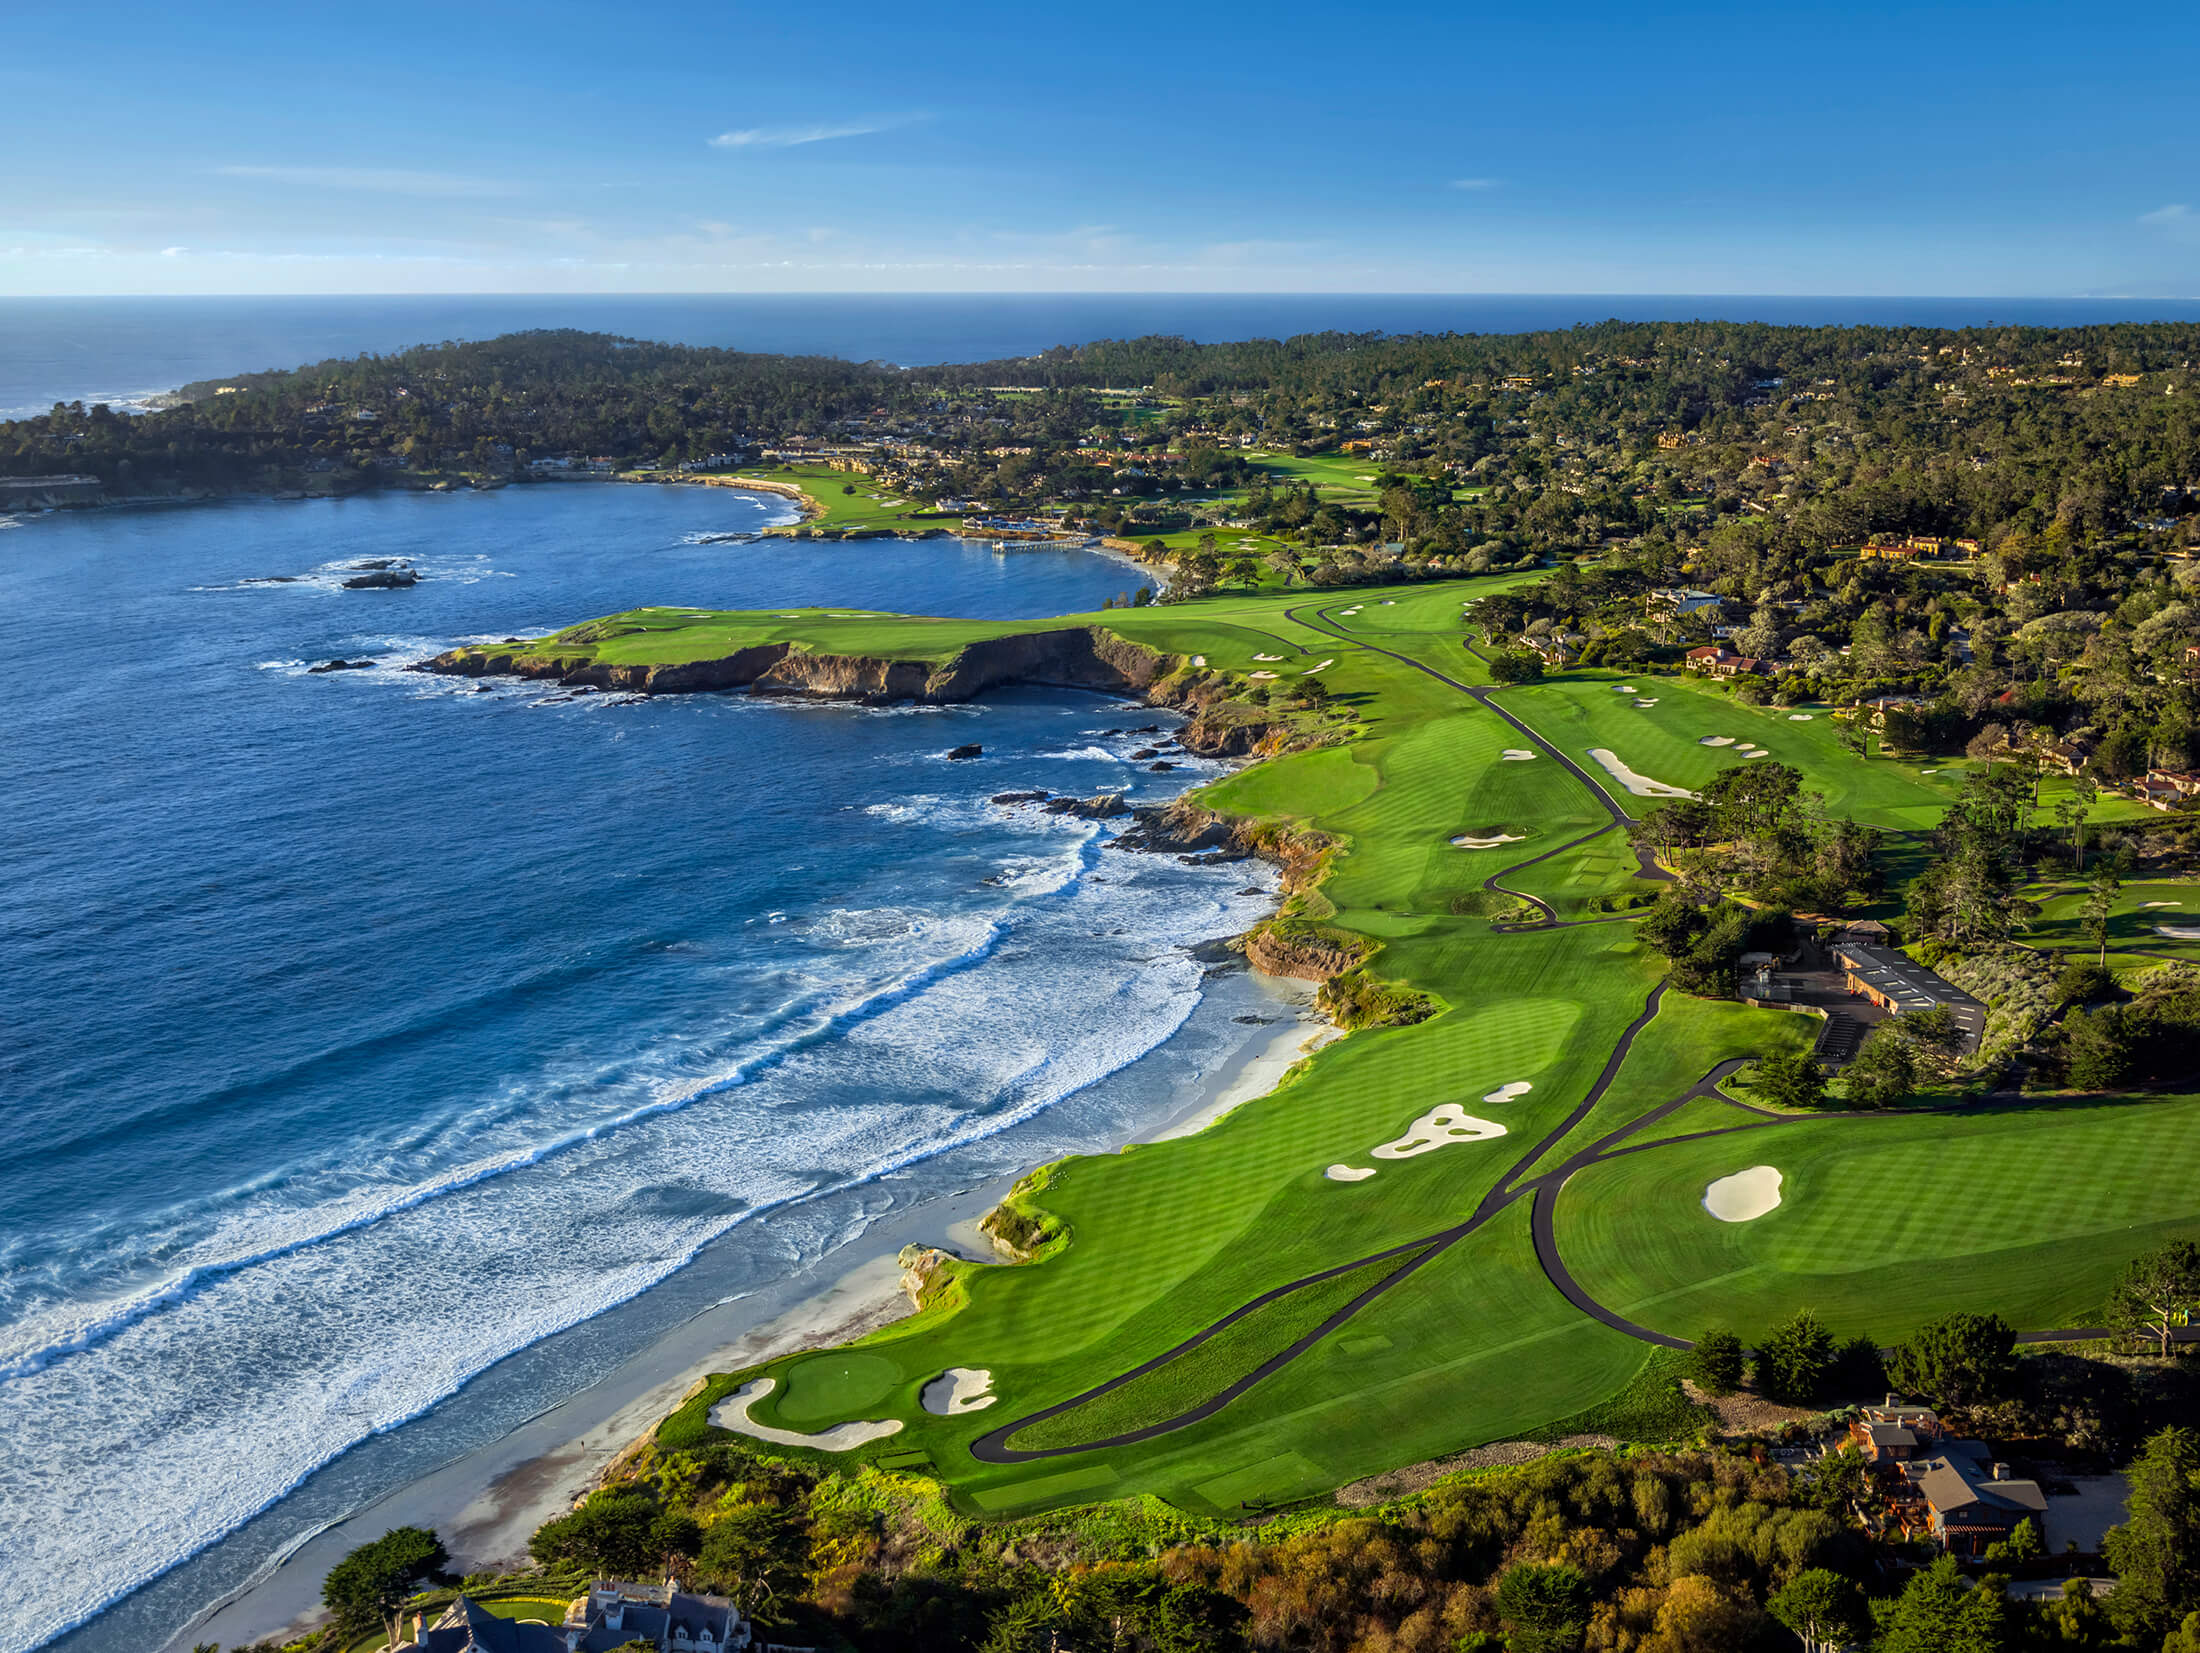 Pebble Beach Golf Club - The Social Golfer